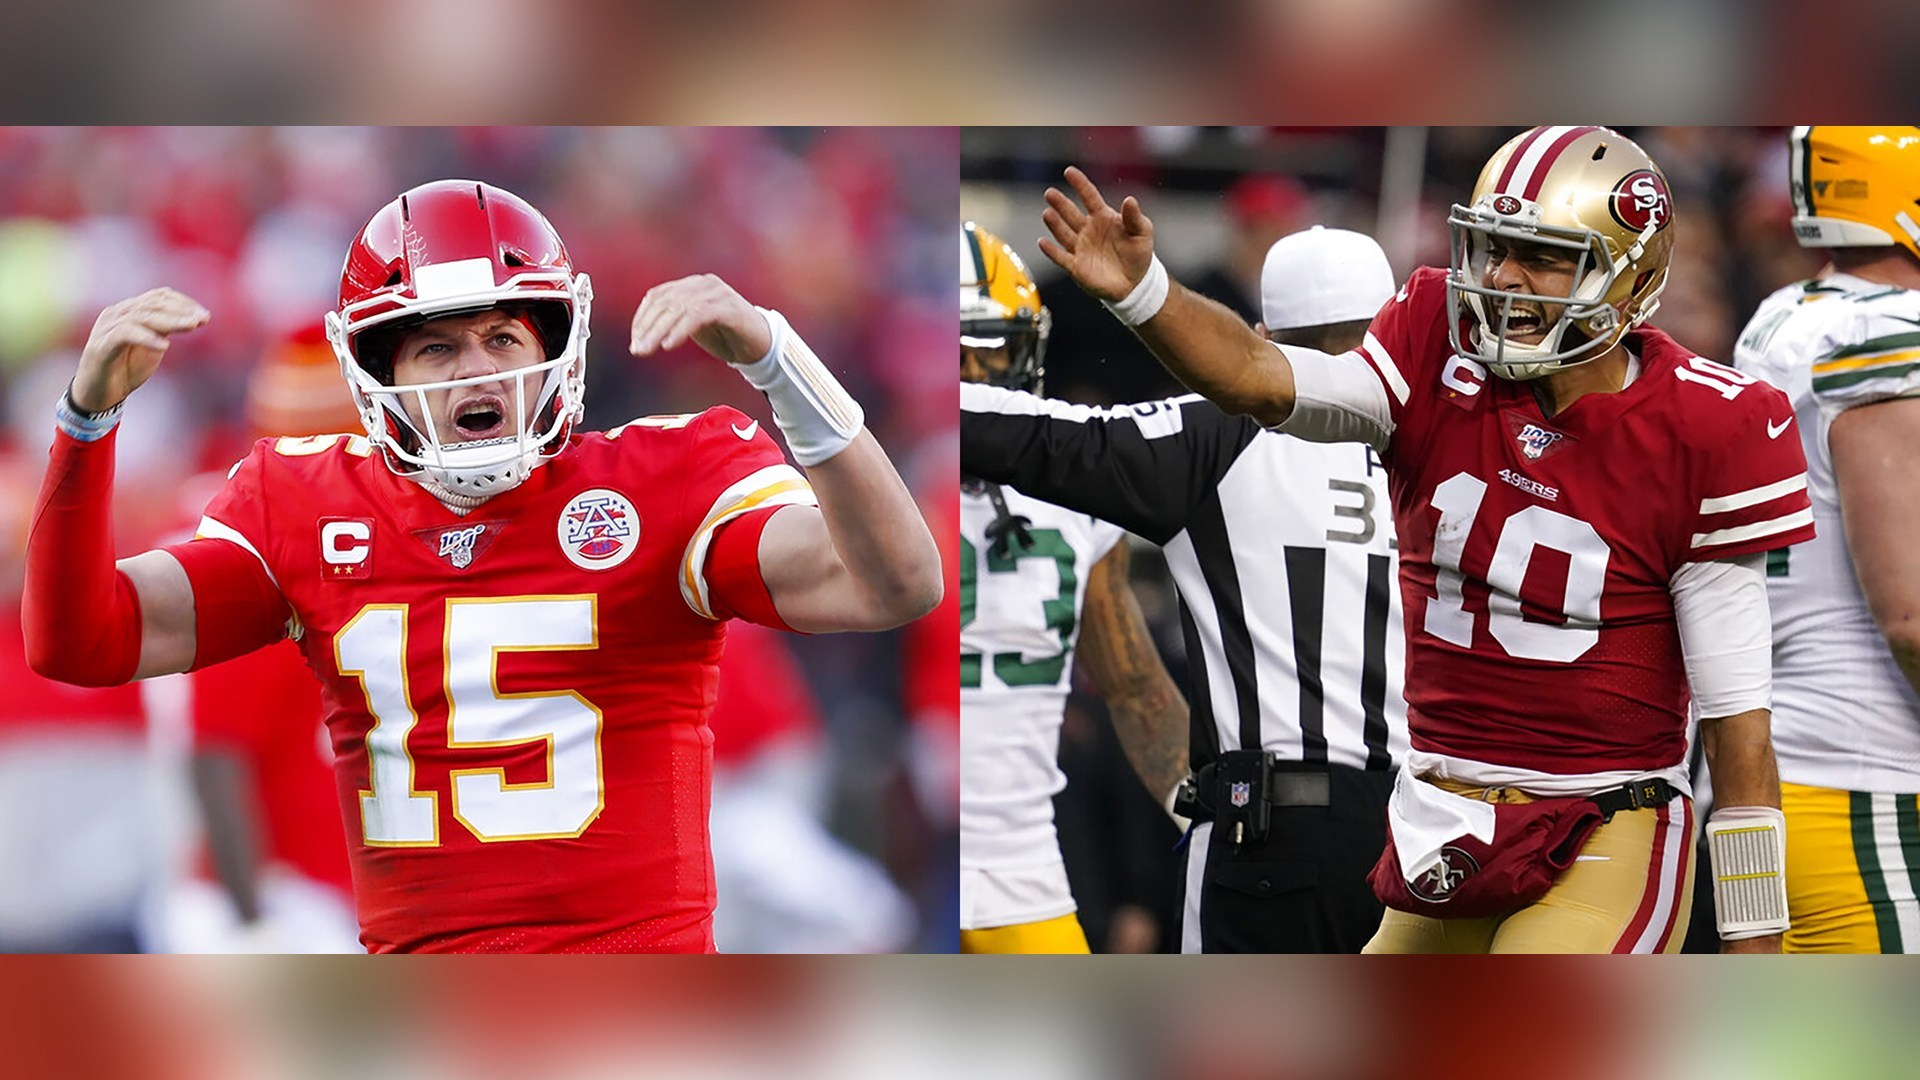 After cashing in on QB gambles Niners Chiefs in Super Bowl 1920x1080